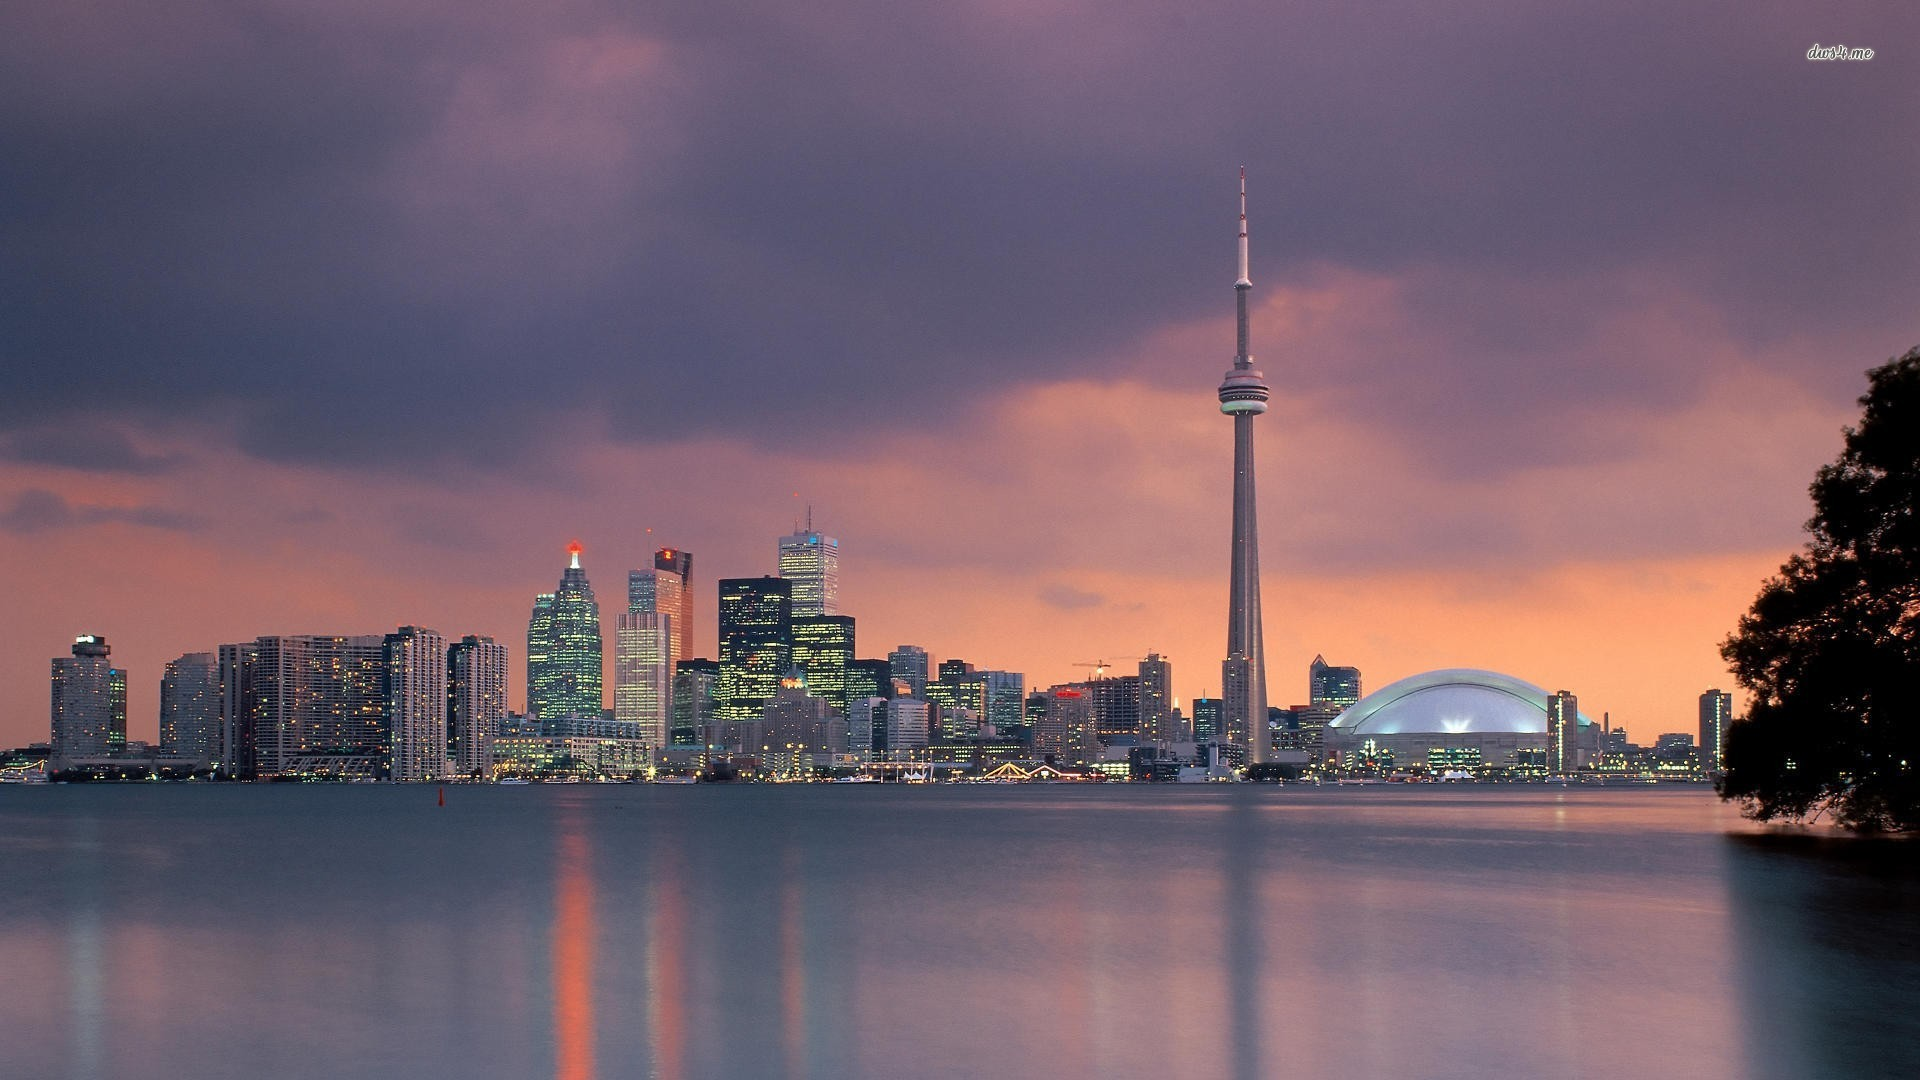 Toronto skyline wallpaper 1280x800 Toronto skyline wallpaper 1366x768 1920x1080